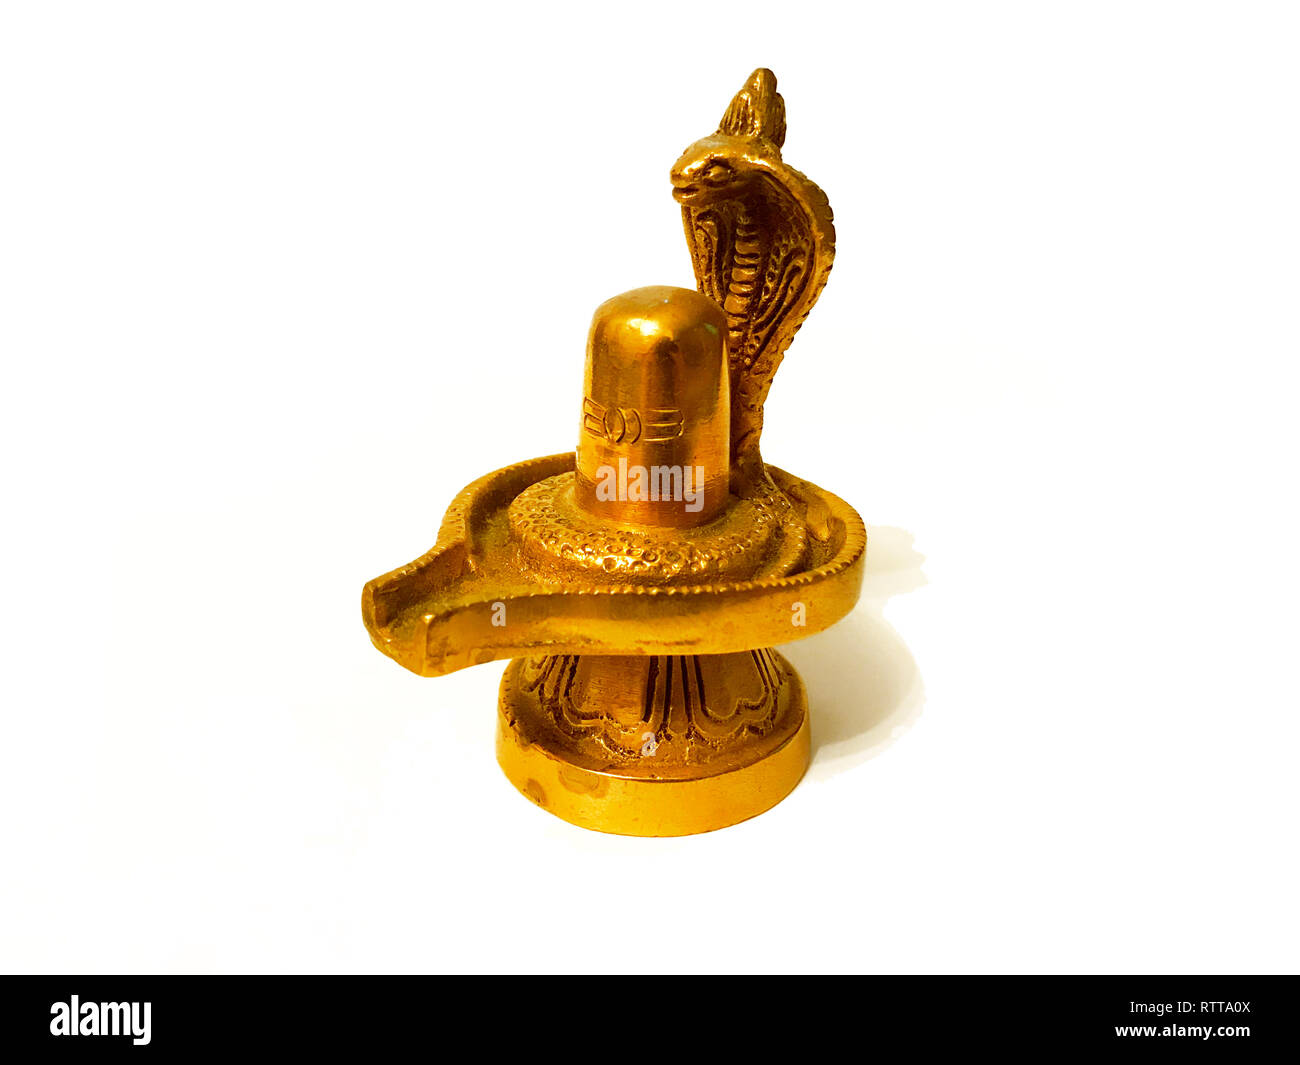 Gold Lord Shiva Lingam sculpture isolated on white background - Stock Image